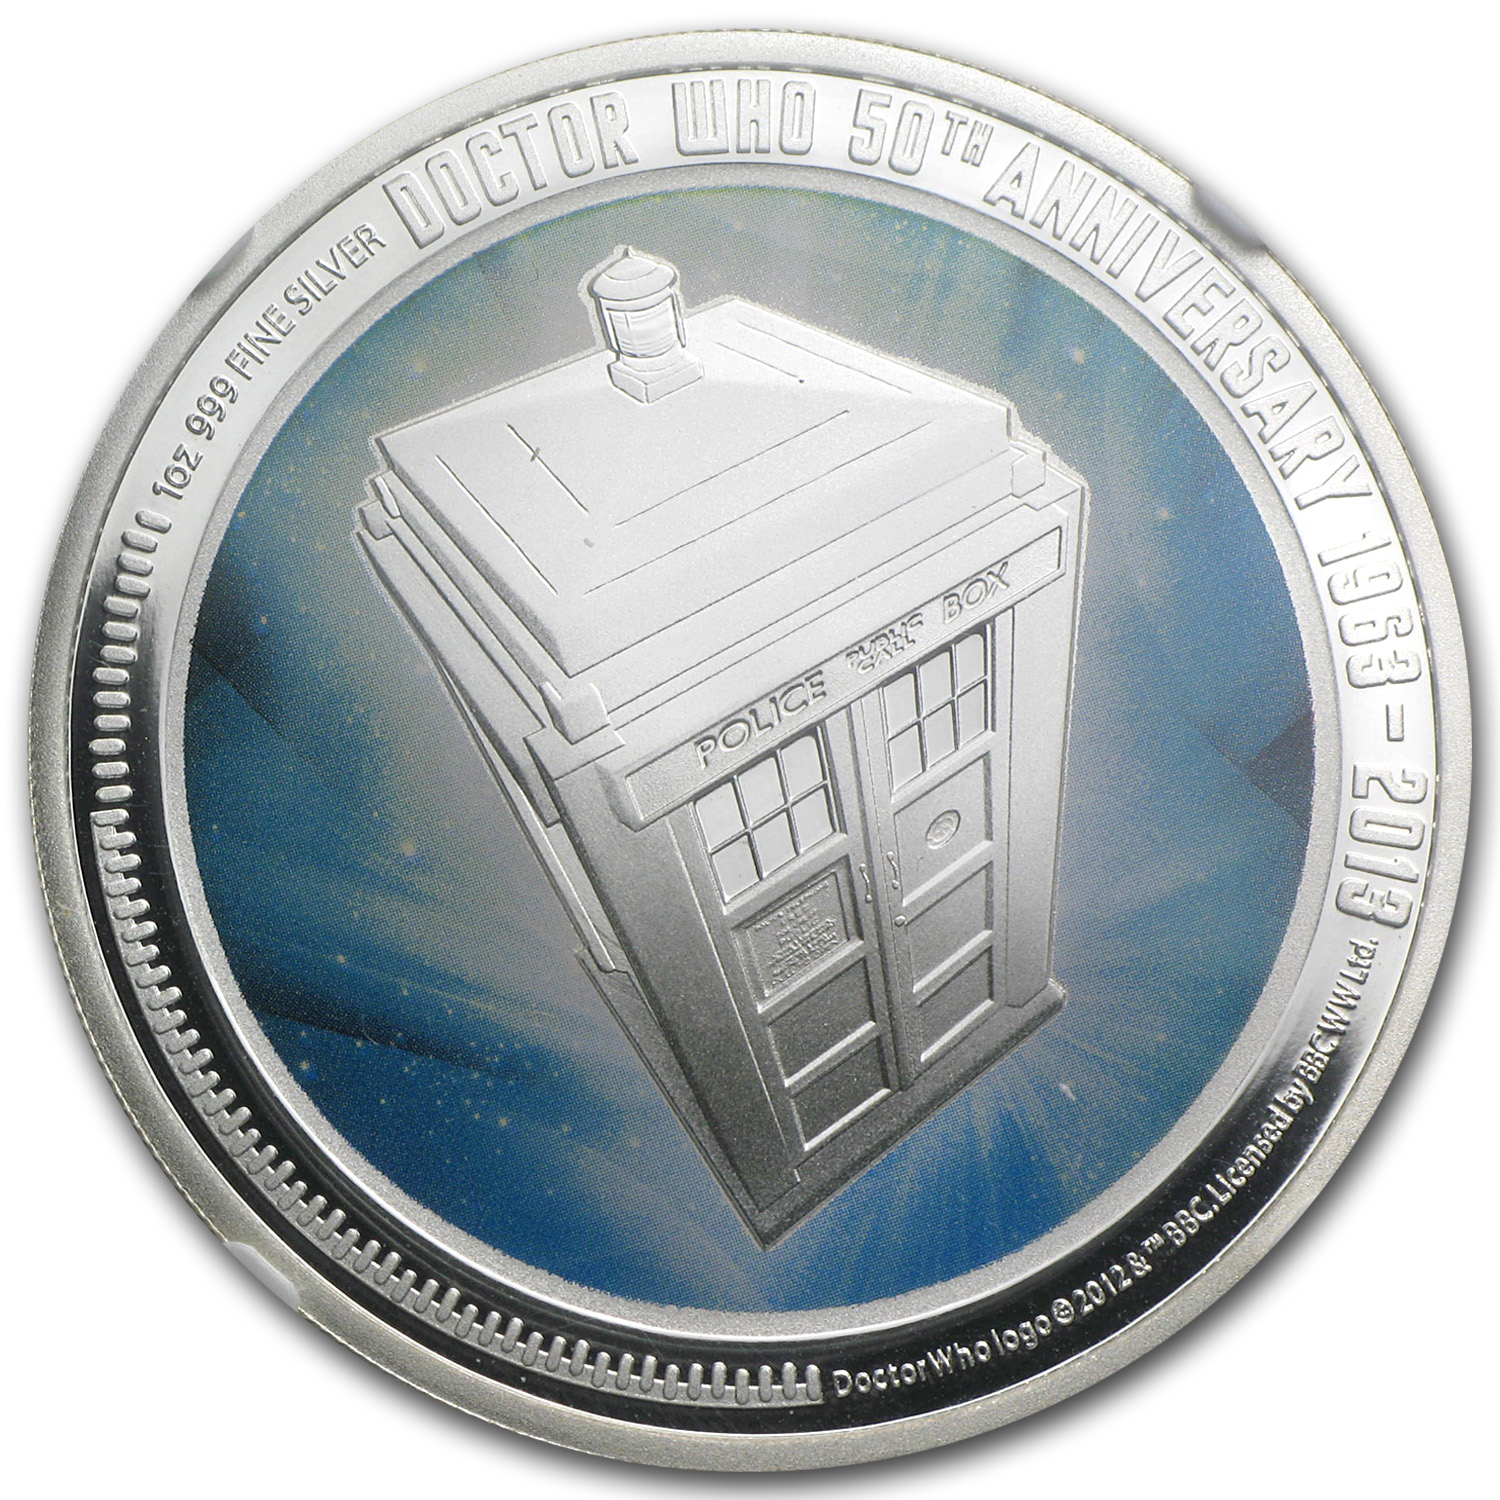 2013 1 oz Silver Doctor Who 50th Anniversary Coin NGC PF-70 UCAM